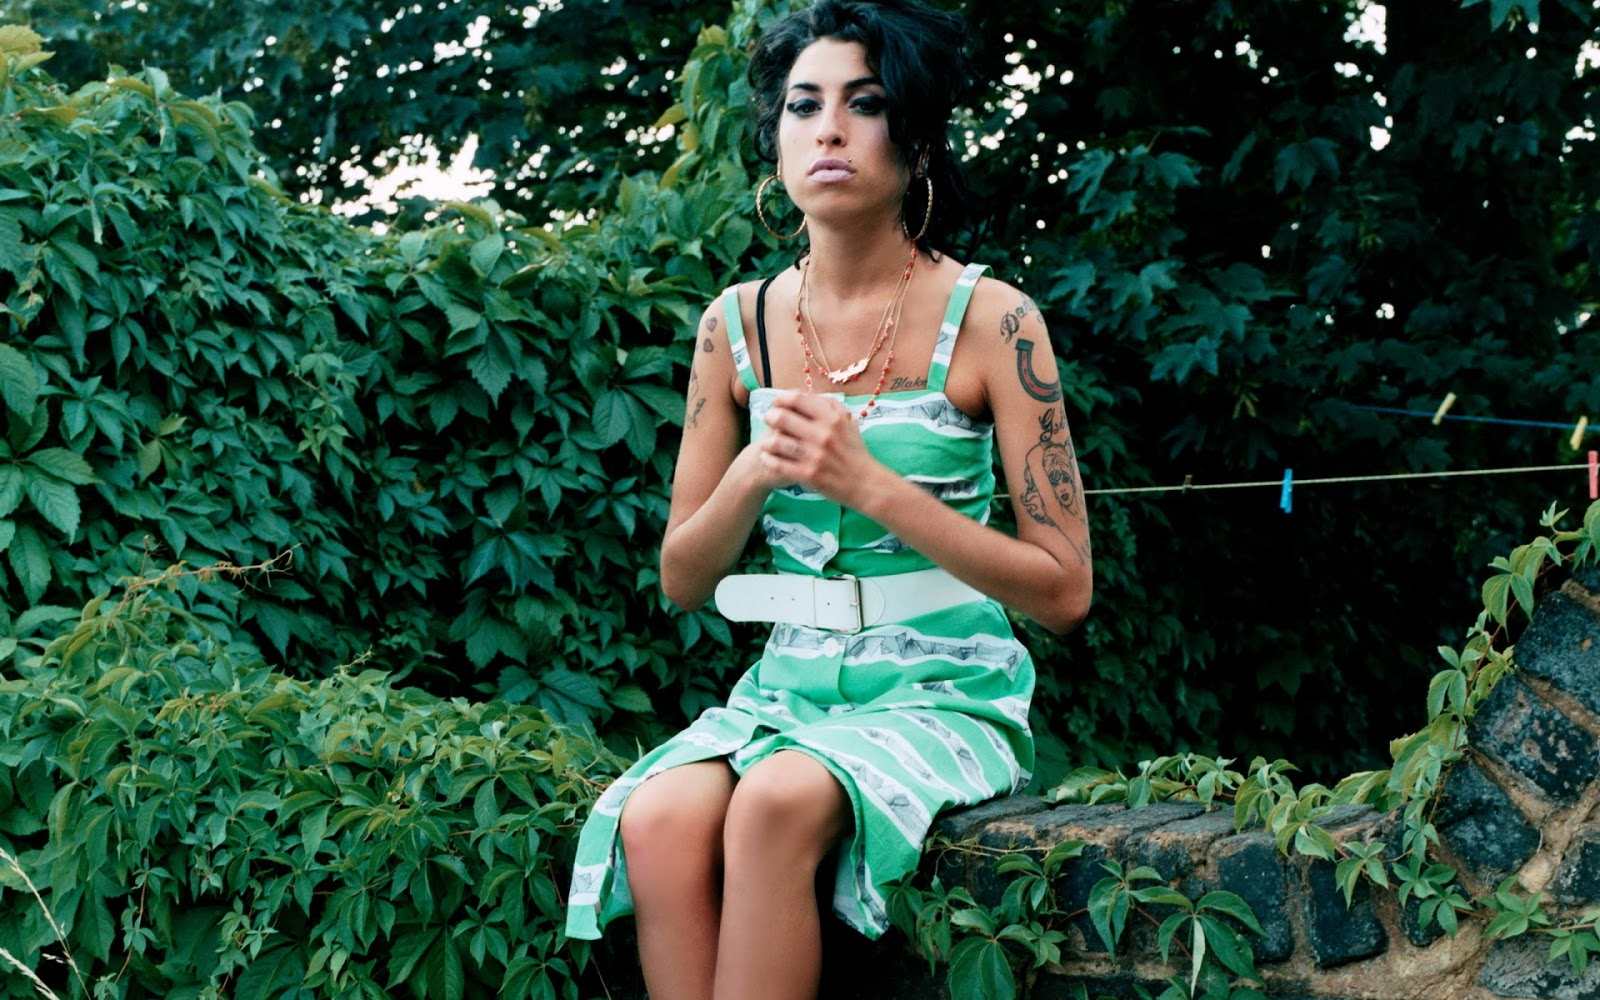 Amy Winehouse Sitting in Garden